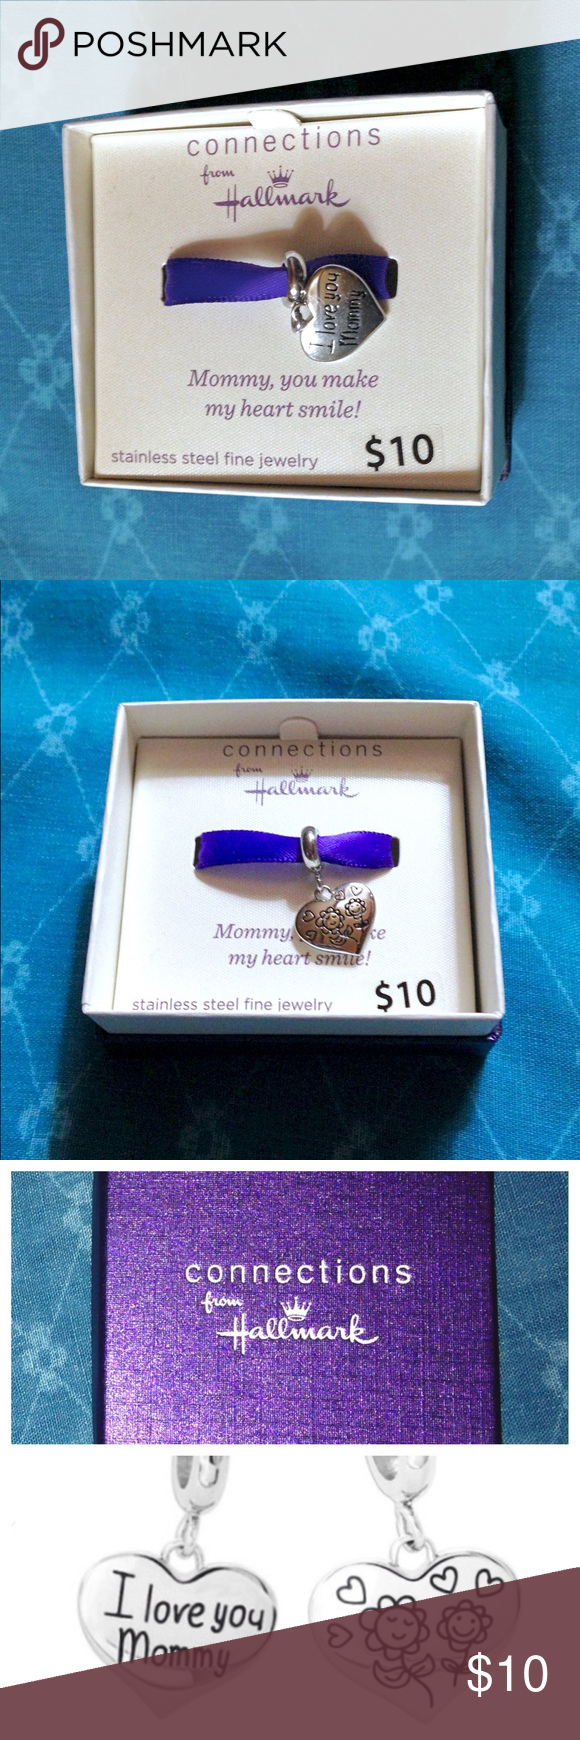 """Connections Hallmark I love you Mommy Heart Charm. Connections from Hallmark Stainless Steel """"I love you Mommy"""" Heart Dangle Charm  """"This elegant Connections from Hallmark Stainless Steel """"I love you Mommy"""" Heart Dangle Charm is a great gift for any occasion.  The reverse side has two smiling flowers and hearts on it.  It comes in a gift box if you want to give it to someone special.""""  Info: •Made by Connections from Hallmark •""""I love you Mommy"""" heart shape dangle charm with flowers…"""